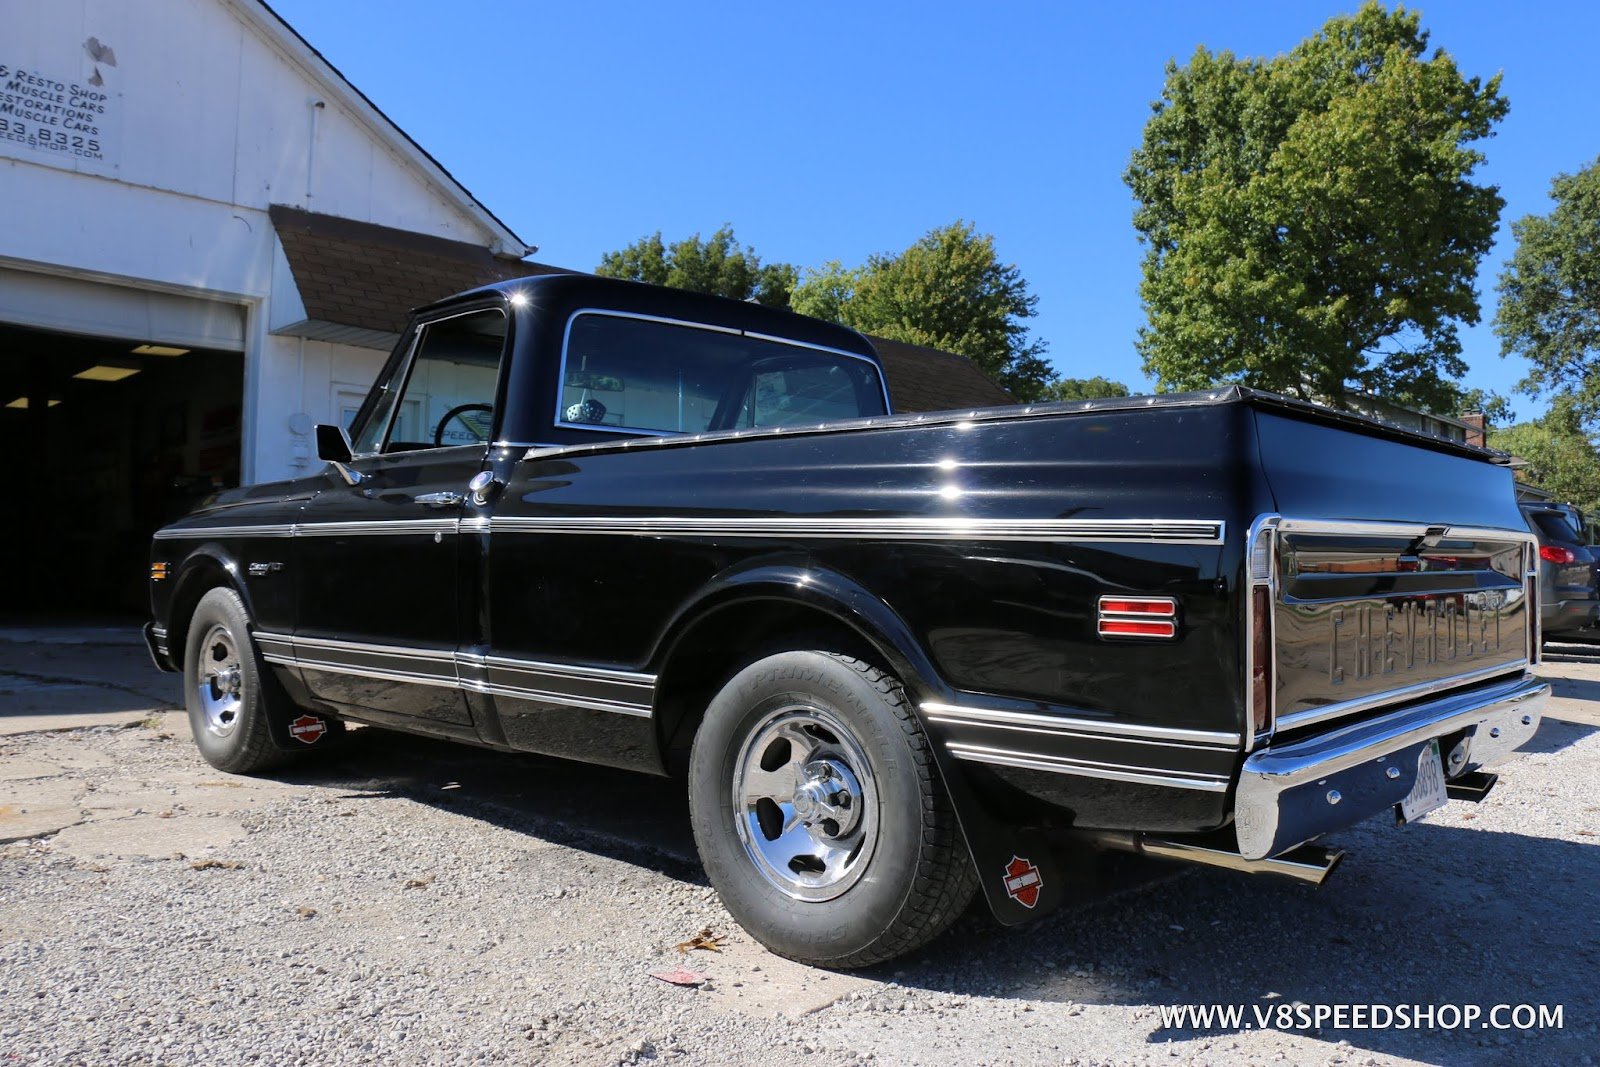 Pickup chevy c10 pickup truck : Cool 1971 Chevrolet C10 Pickup Gets New LS Drivetrain At V8 Speed ...